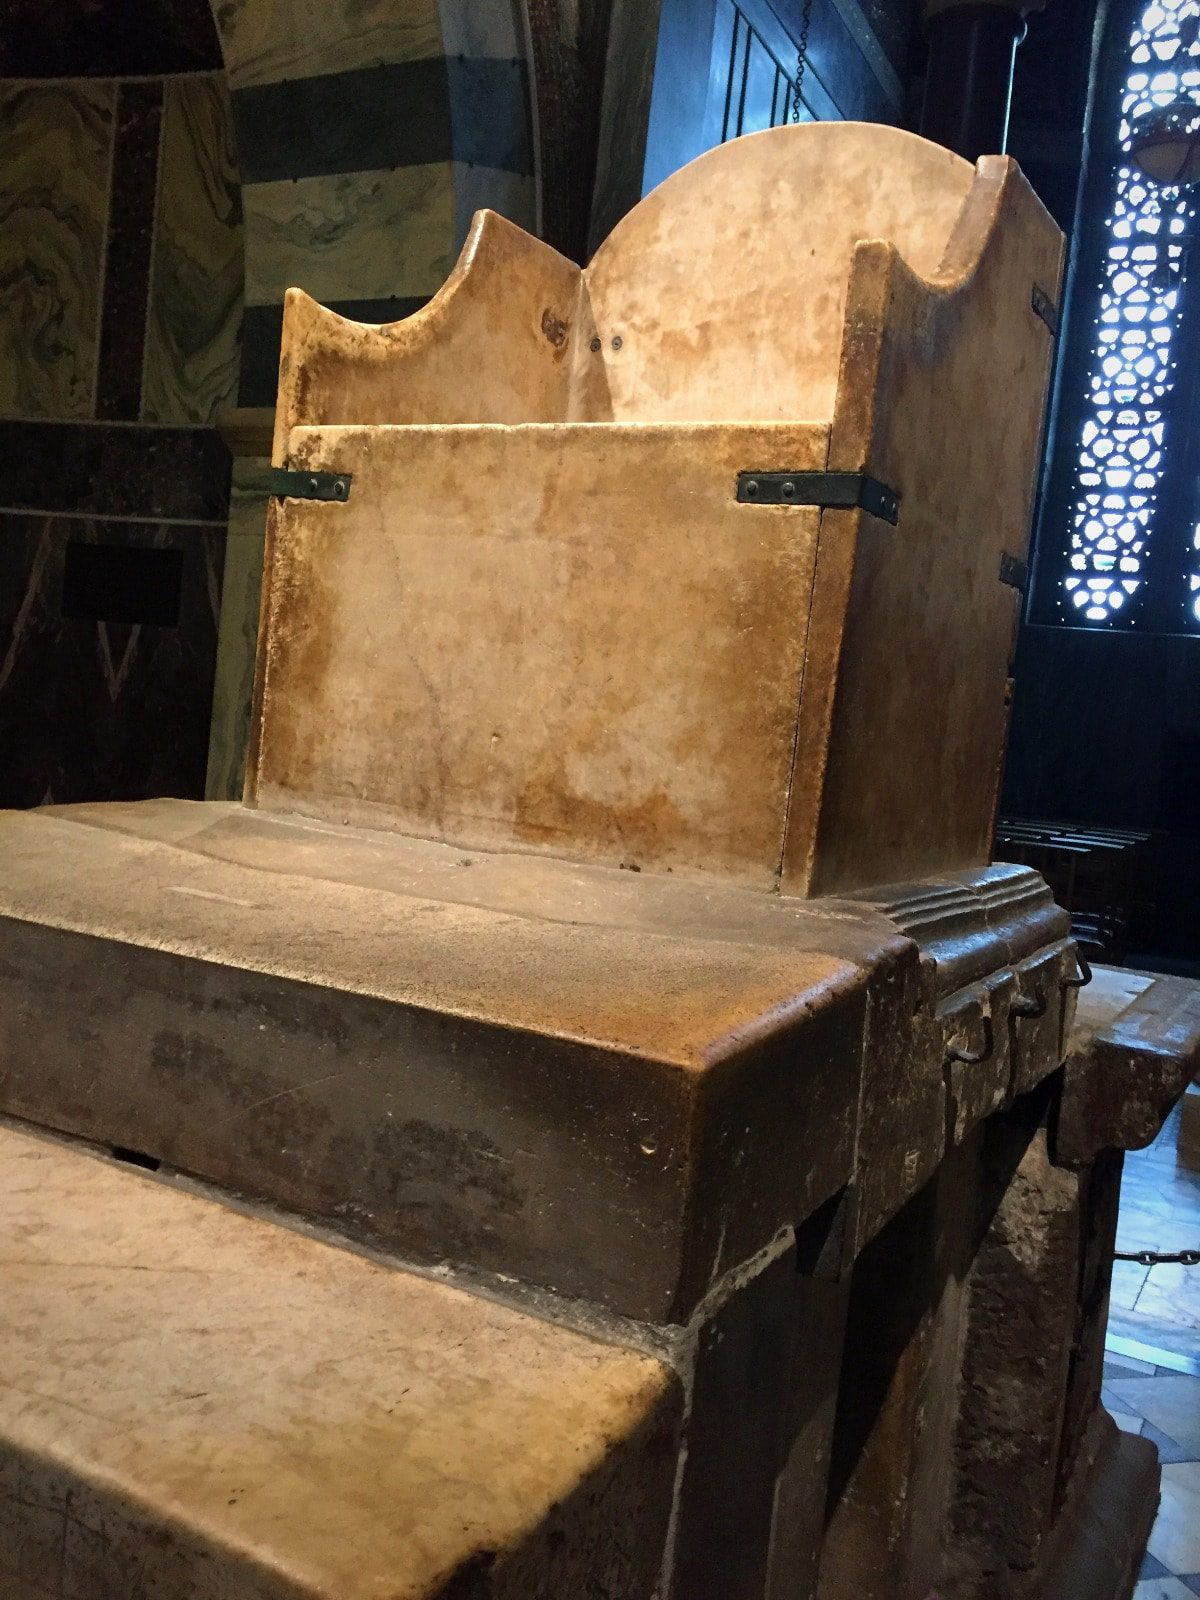 2018 European travel review: Charlemagne's throne in Aachen Cathedral.